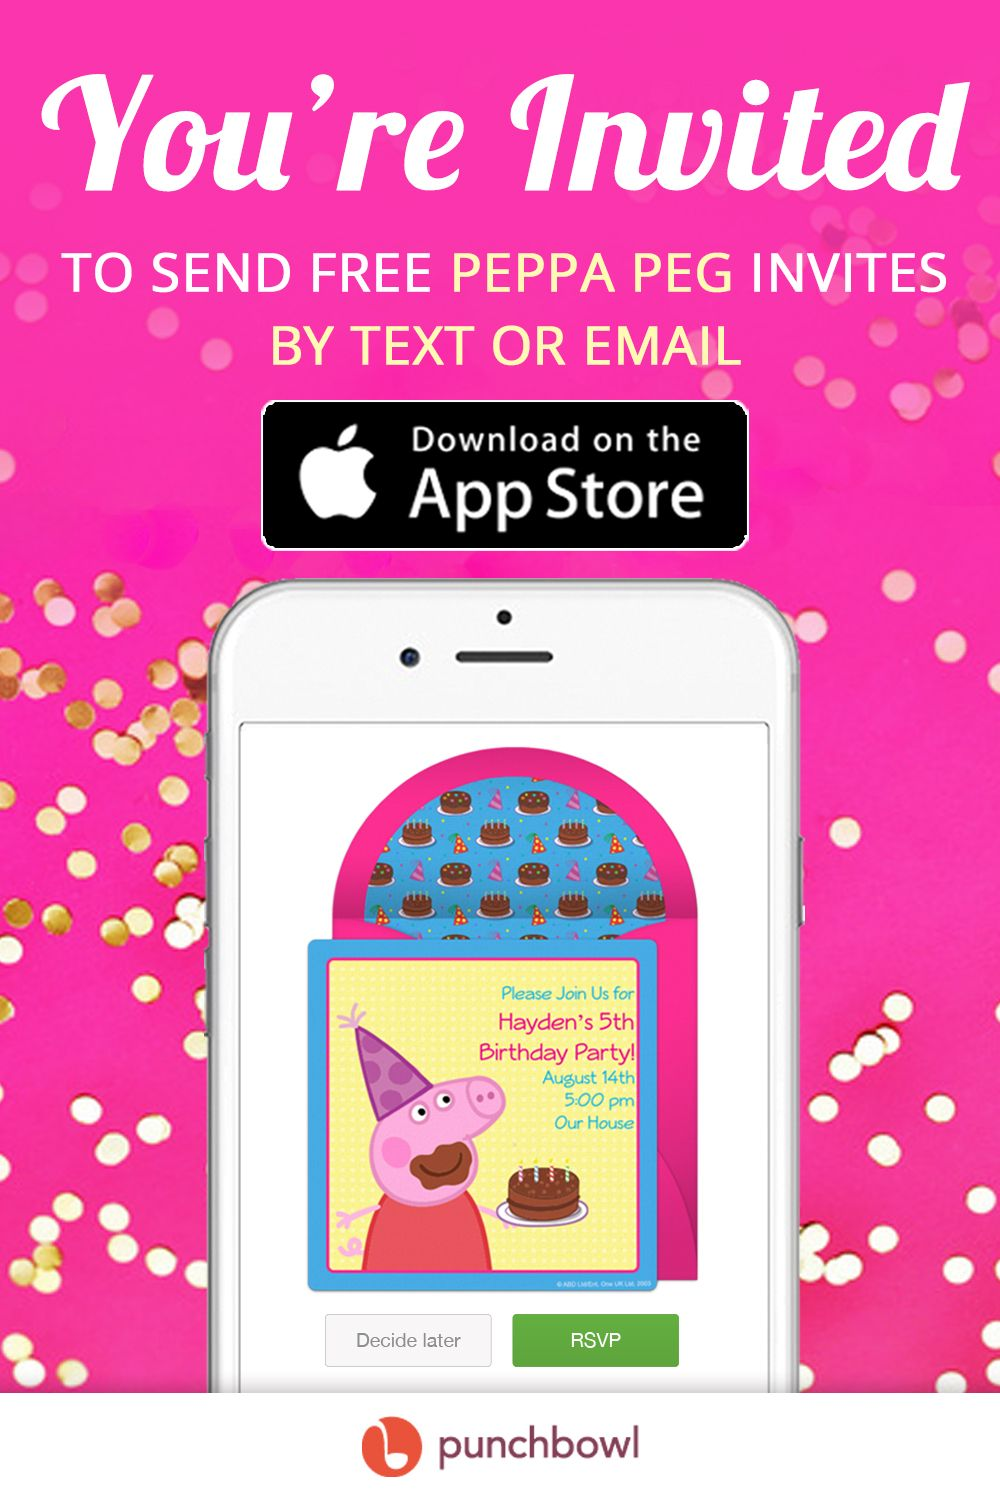 Send Free Peppa Pig Invitations By Text Message Right From Your Phone And Get RSVPs Instantly